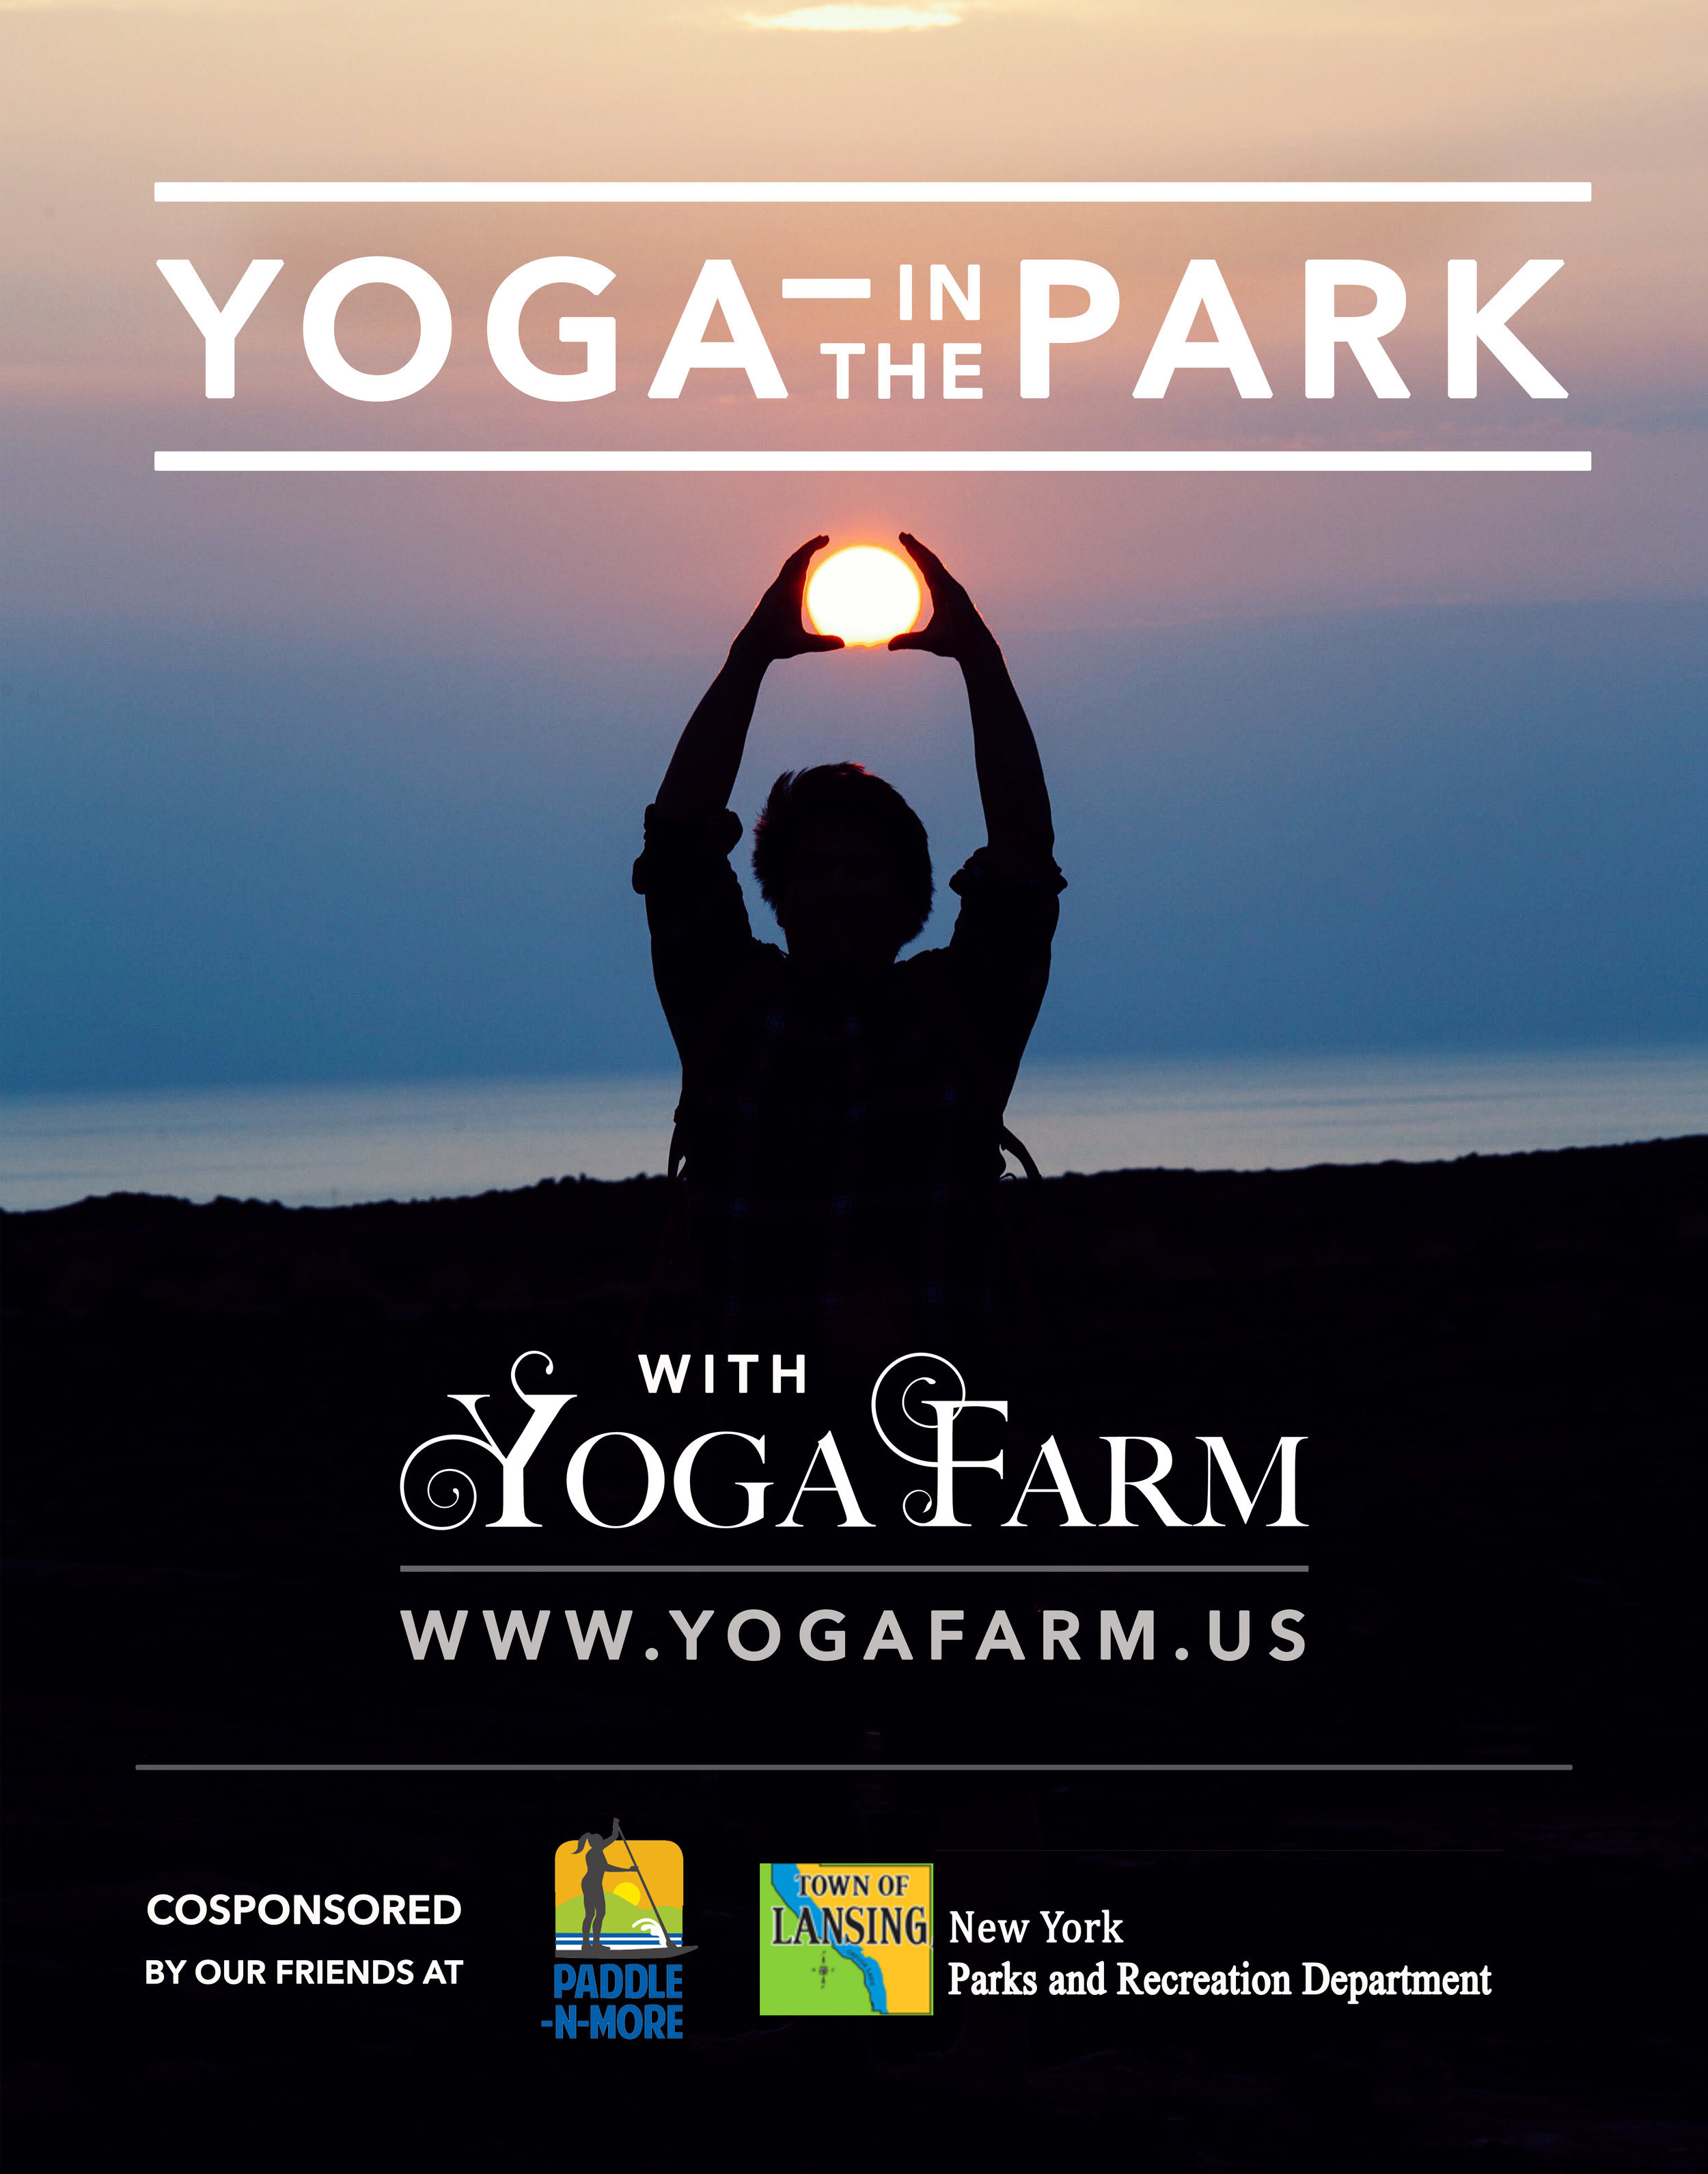 YF_YogainthePark_Sign_1.jpg